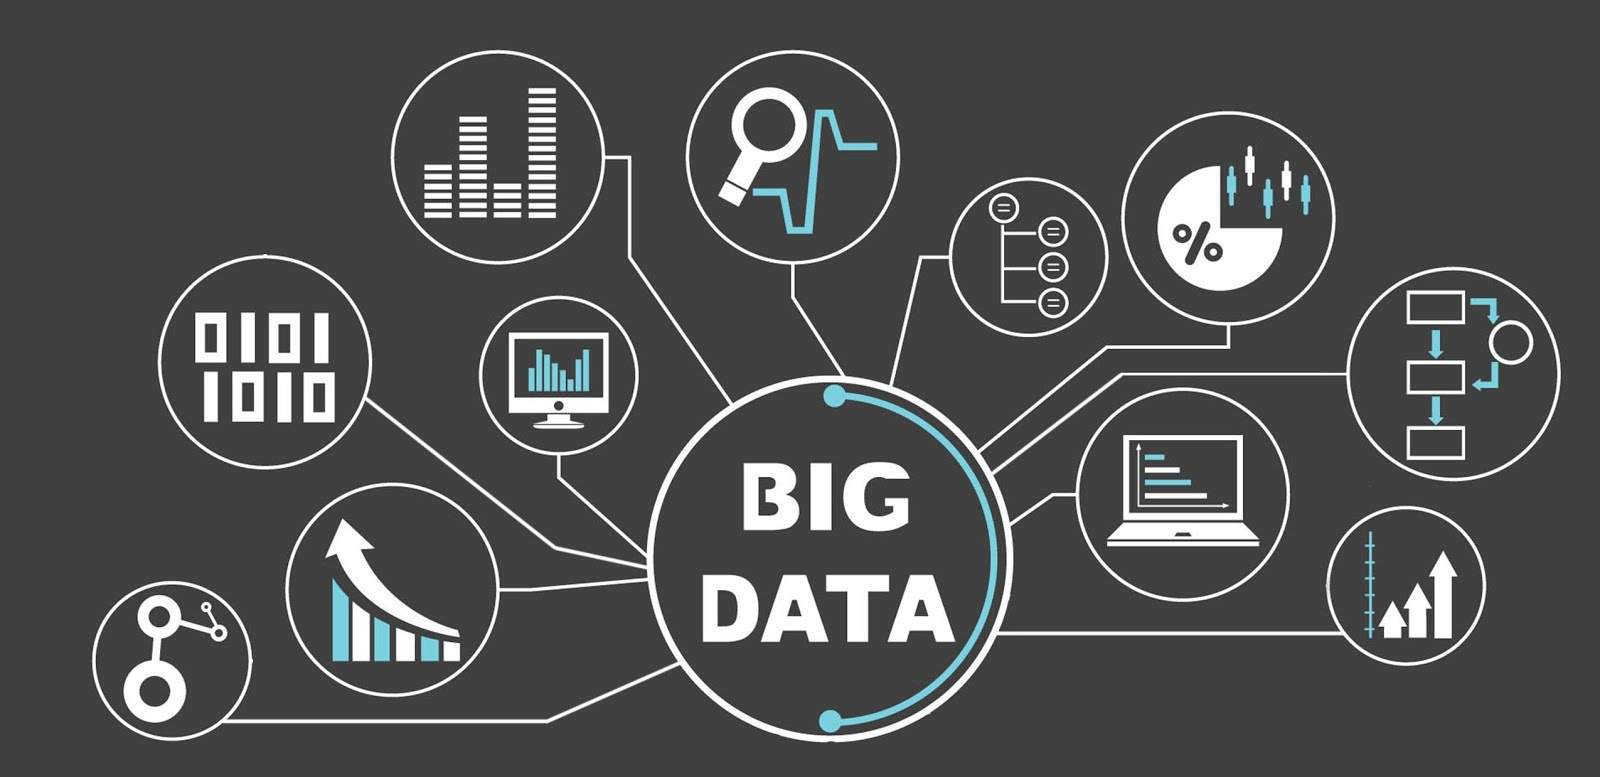 Big data scope